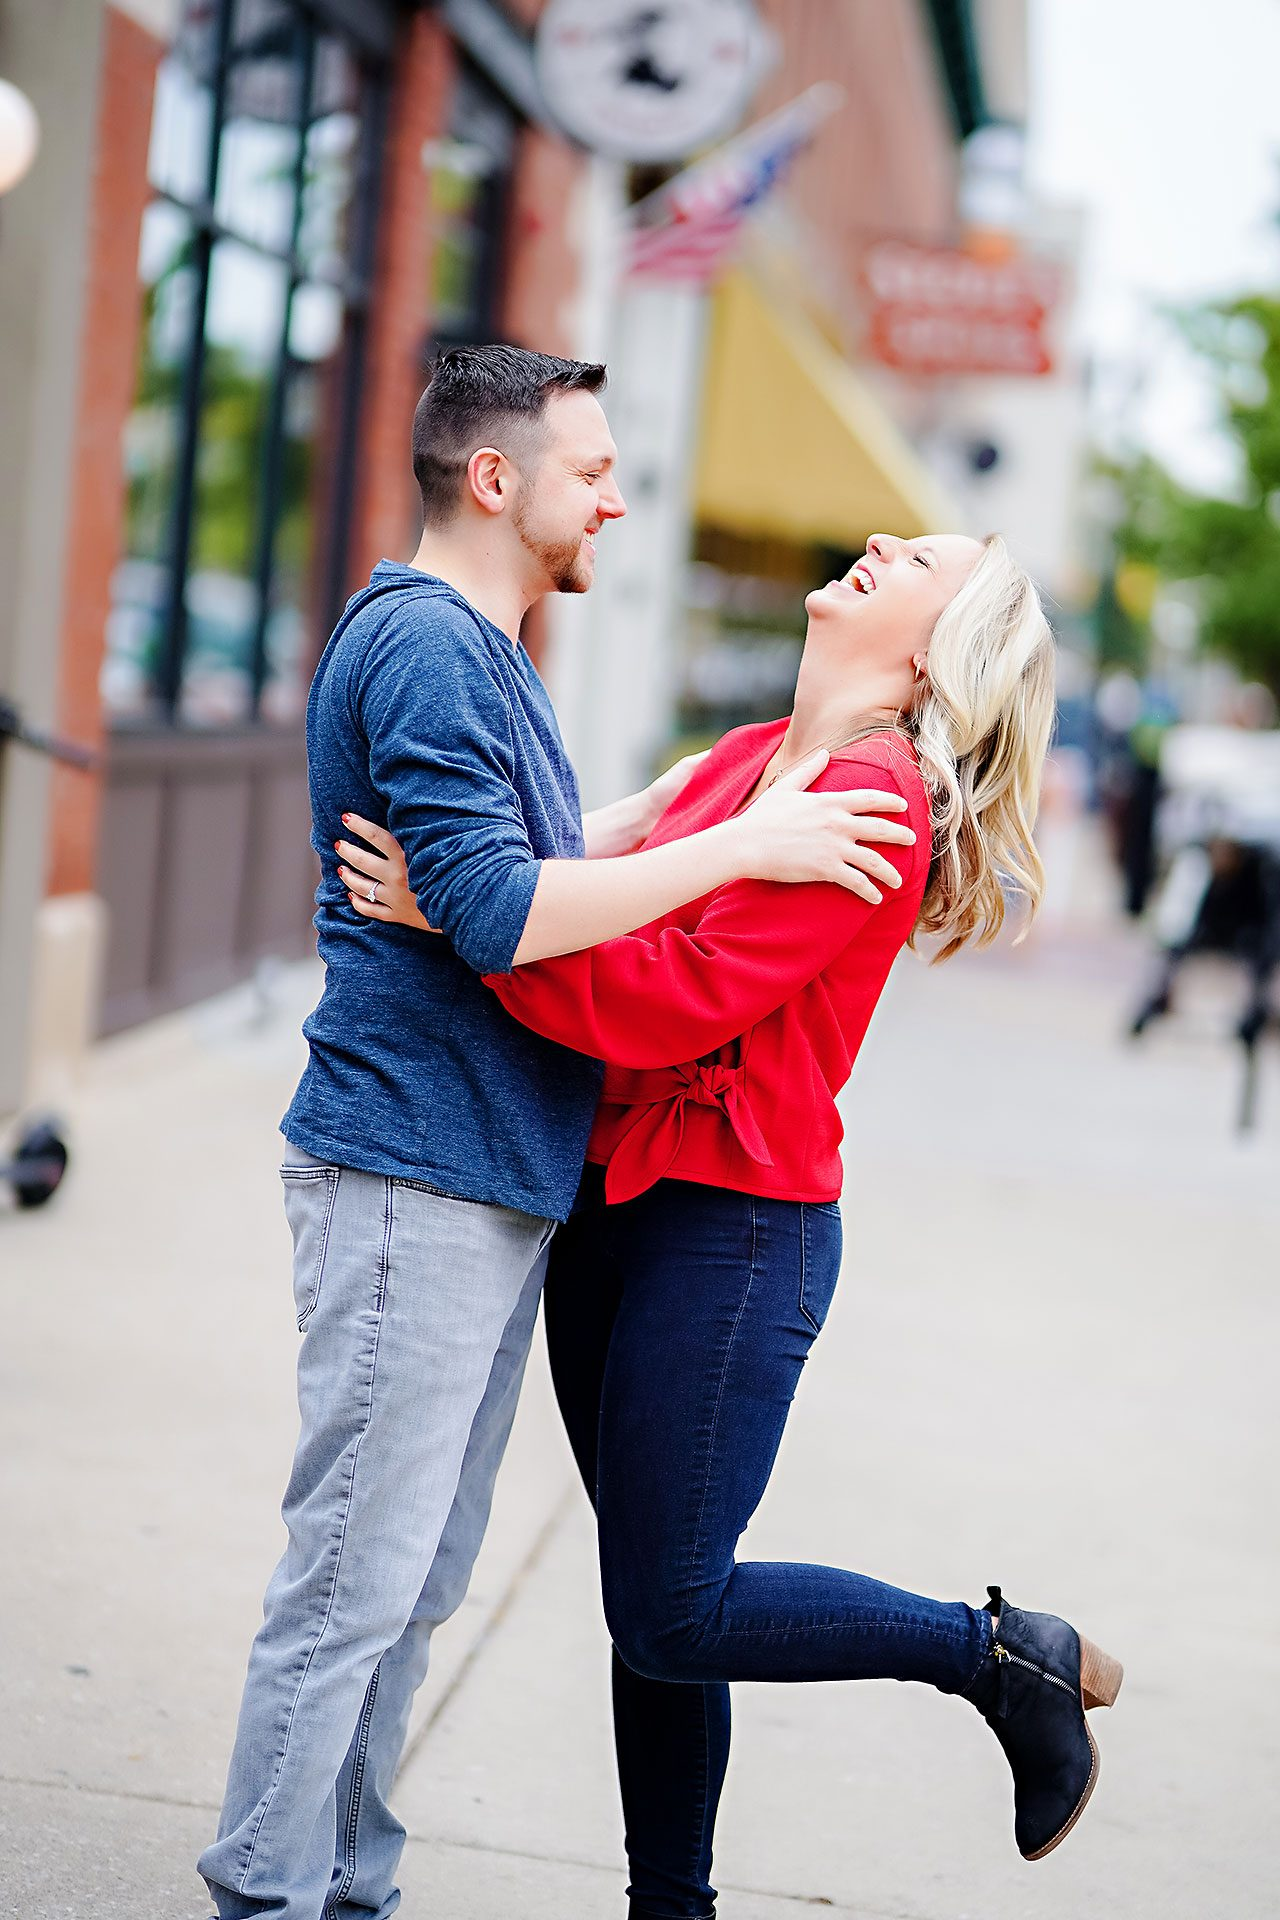 Kristen Jonny Indianapolis Downtown Engagement Session 019